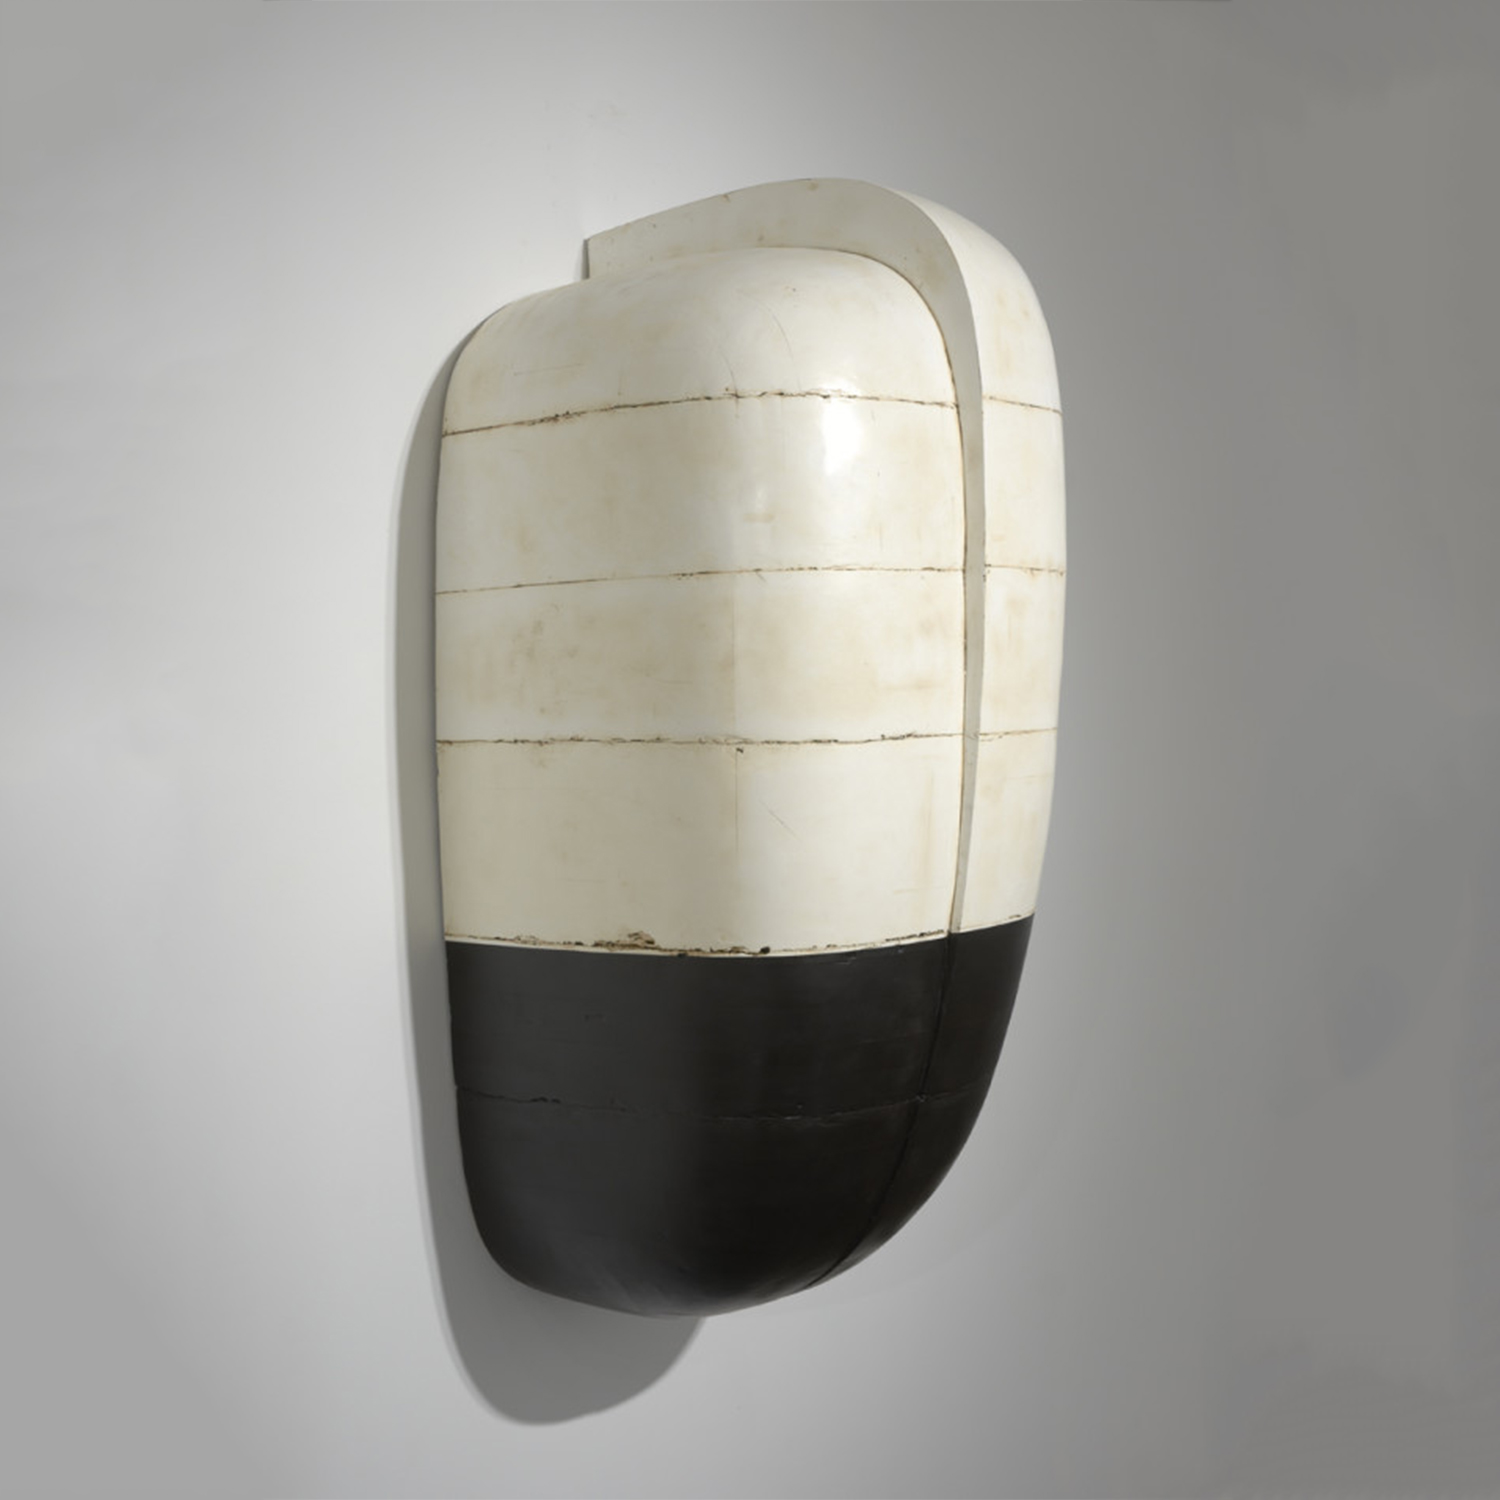 #69  Enamel, oil, plaster, resin, tar and wax 51 x 22 x 19 inches 129.5 x 56 x 48 cm 2008-2010